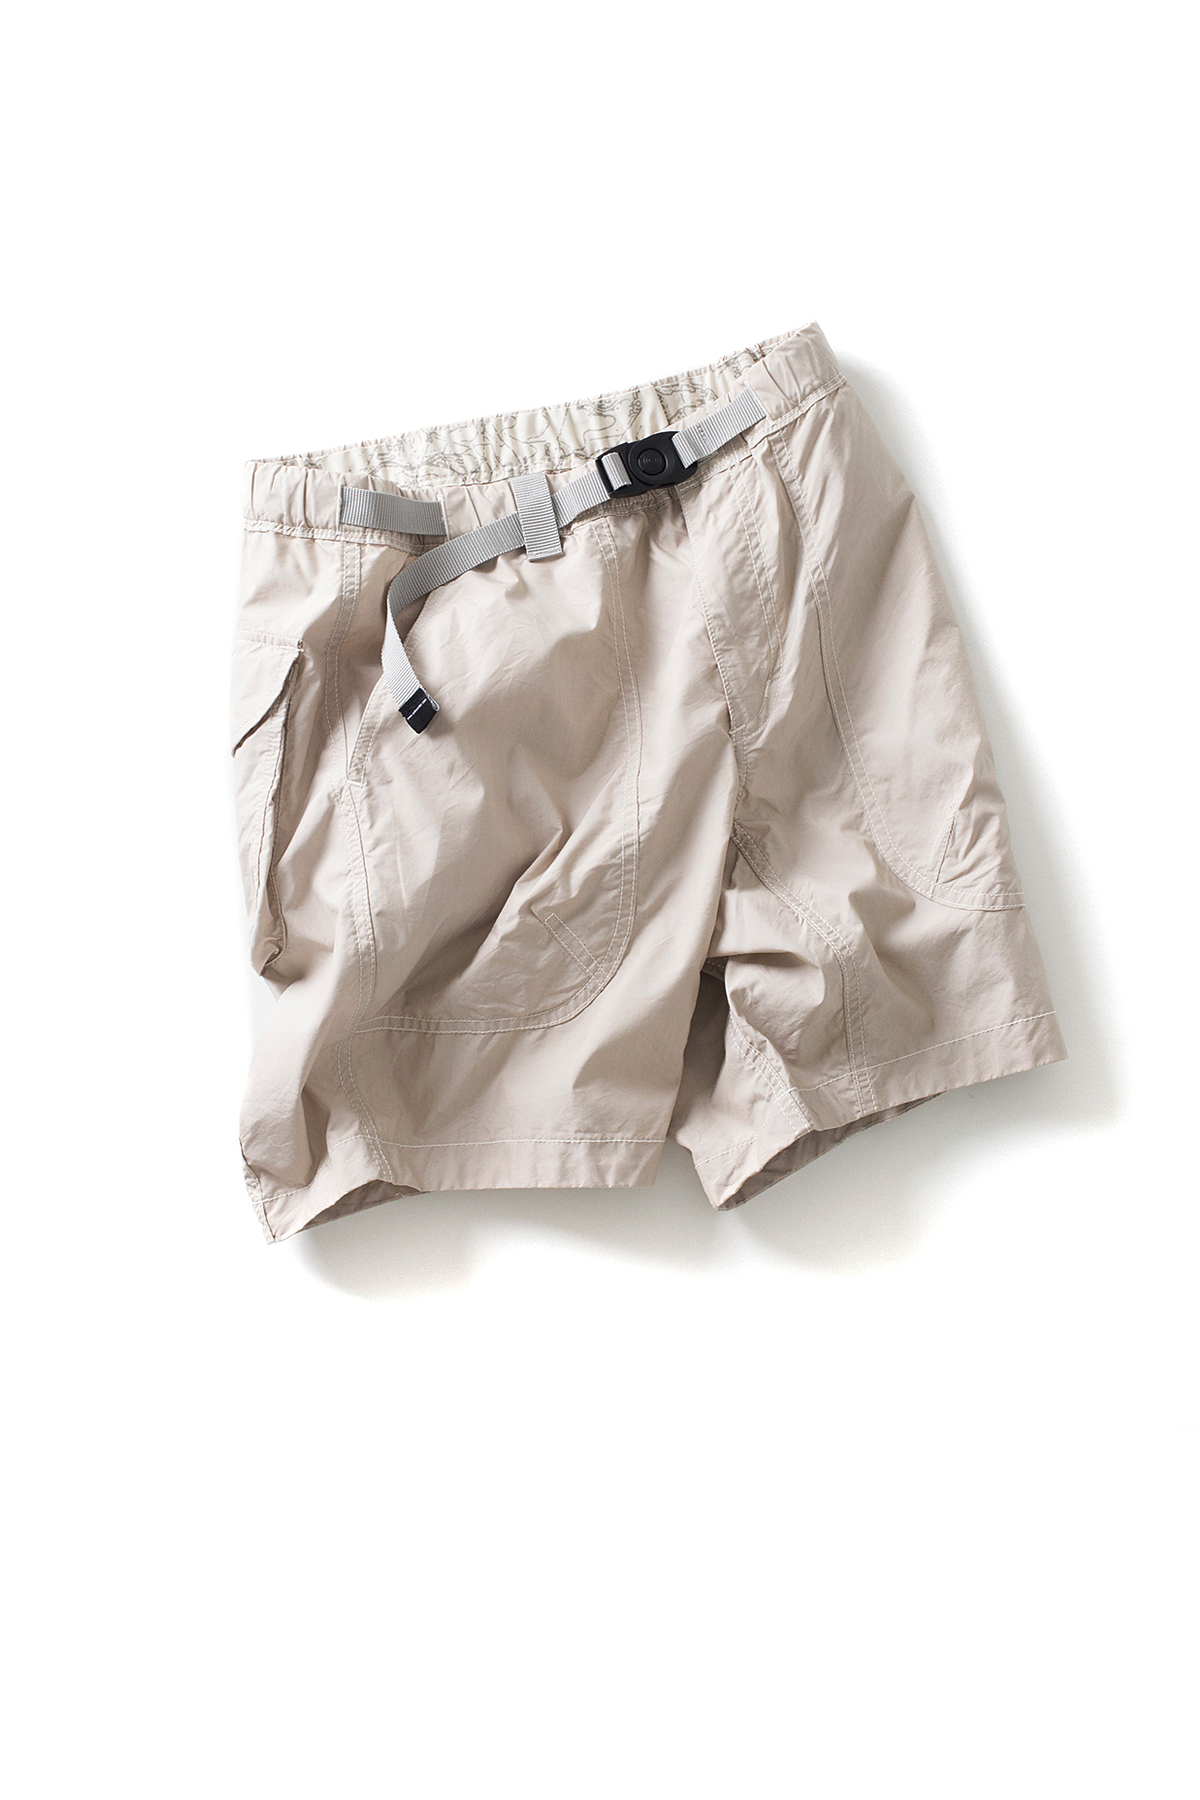 and wander : Dry Typewriter Short Pants (Beige)